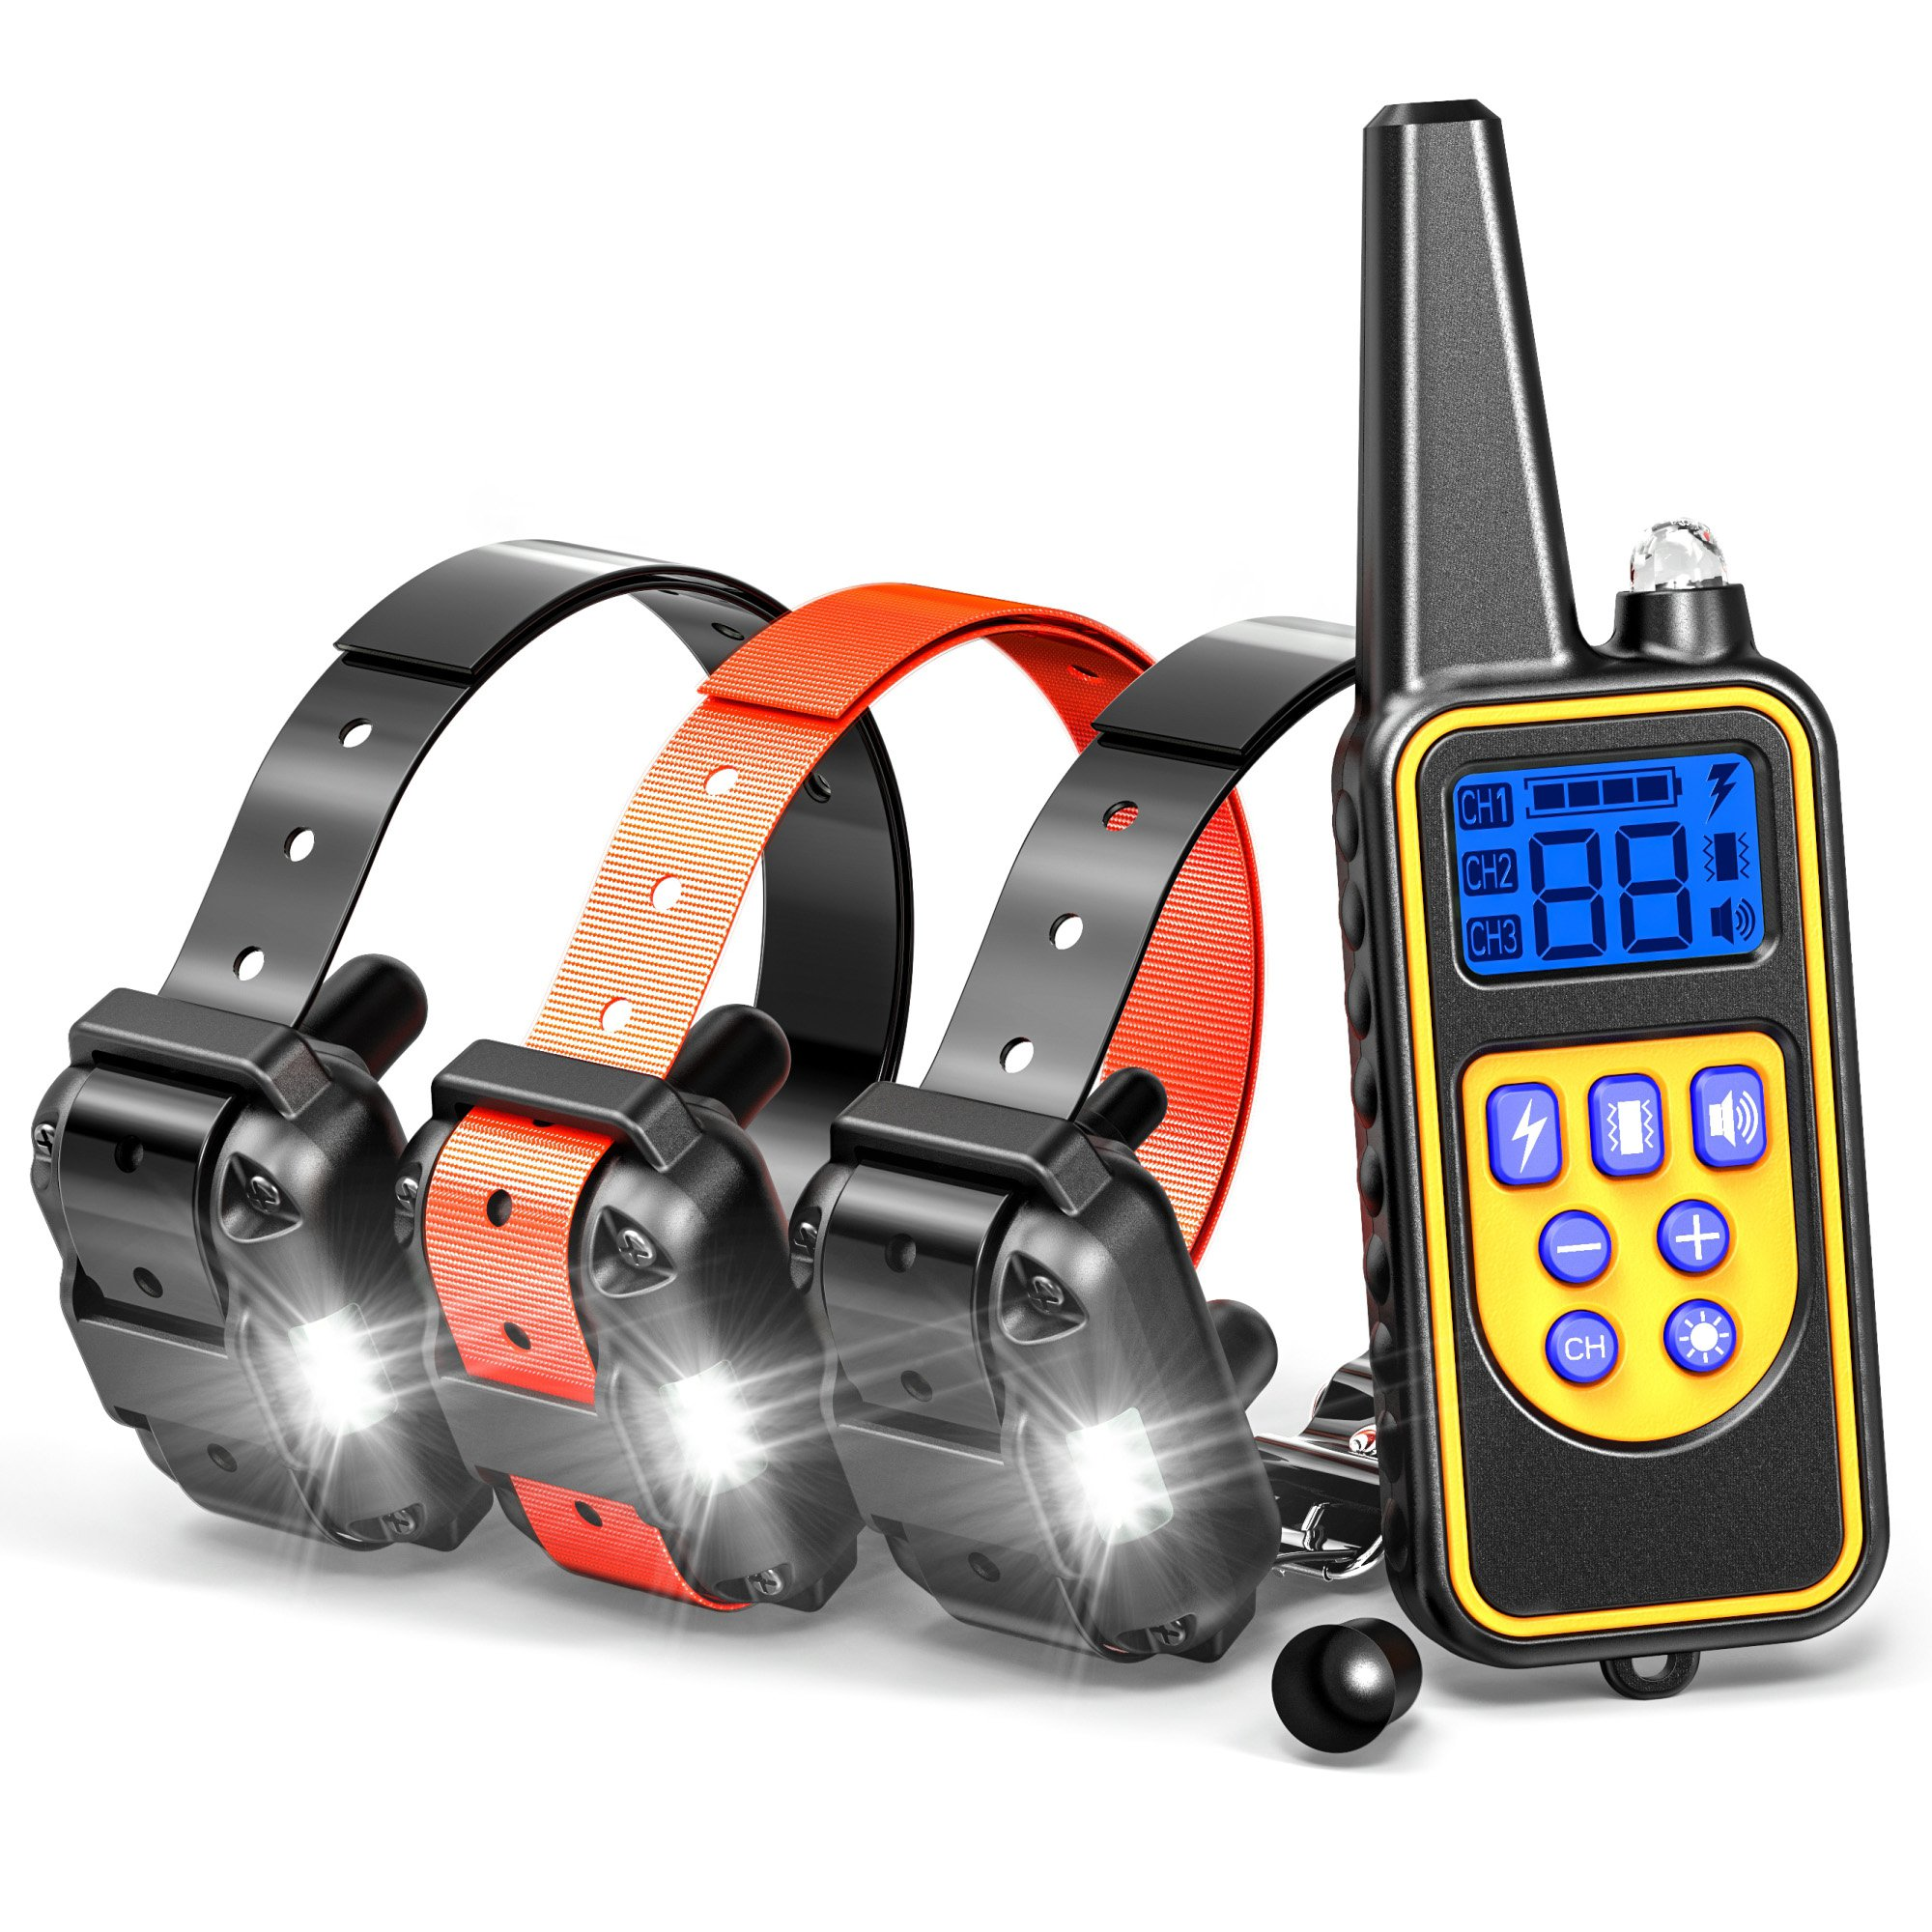 Dog Training Collar, F-color Rechargeable Waterproof Dog Shock Collar 2600ft Remote Dog Trainer Collar with Beep Vibrating Shock LED Light for Medium Large Dogs, Electronic dog training E-collar